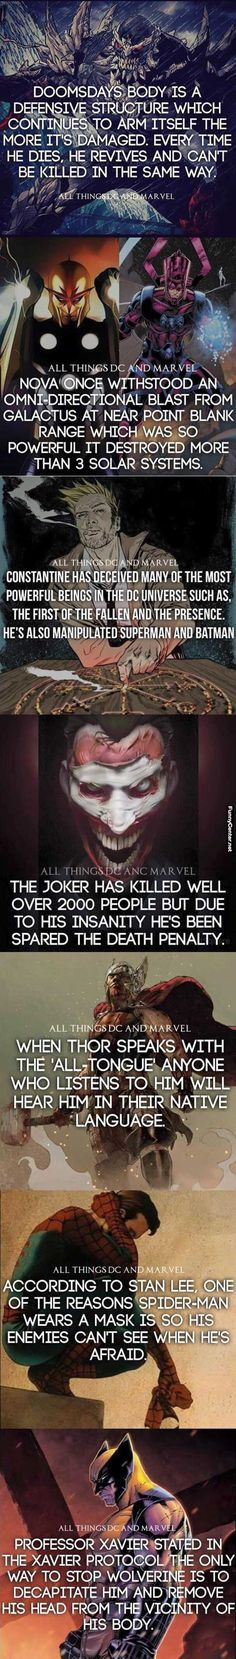 Marvel And DC Comics Facts #comic